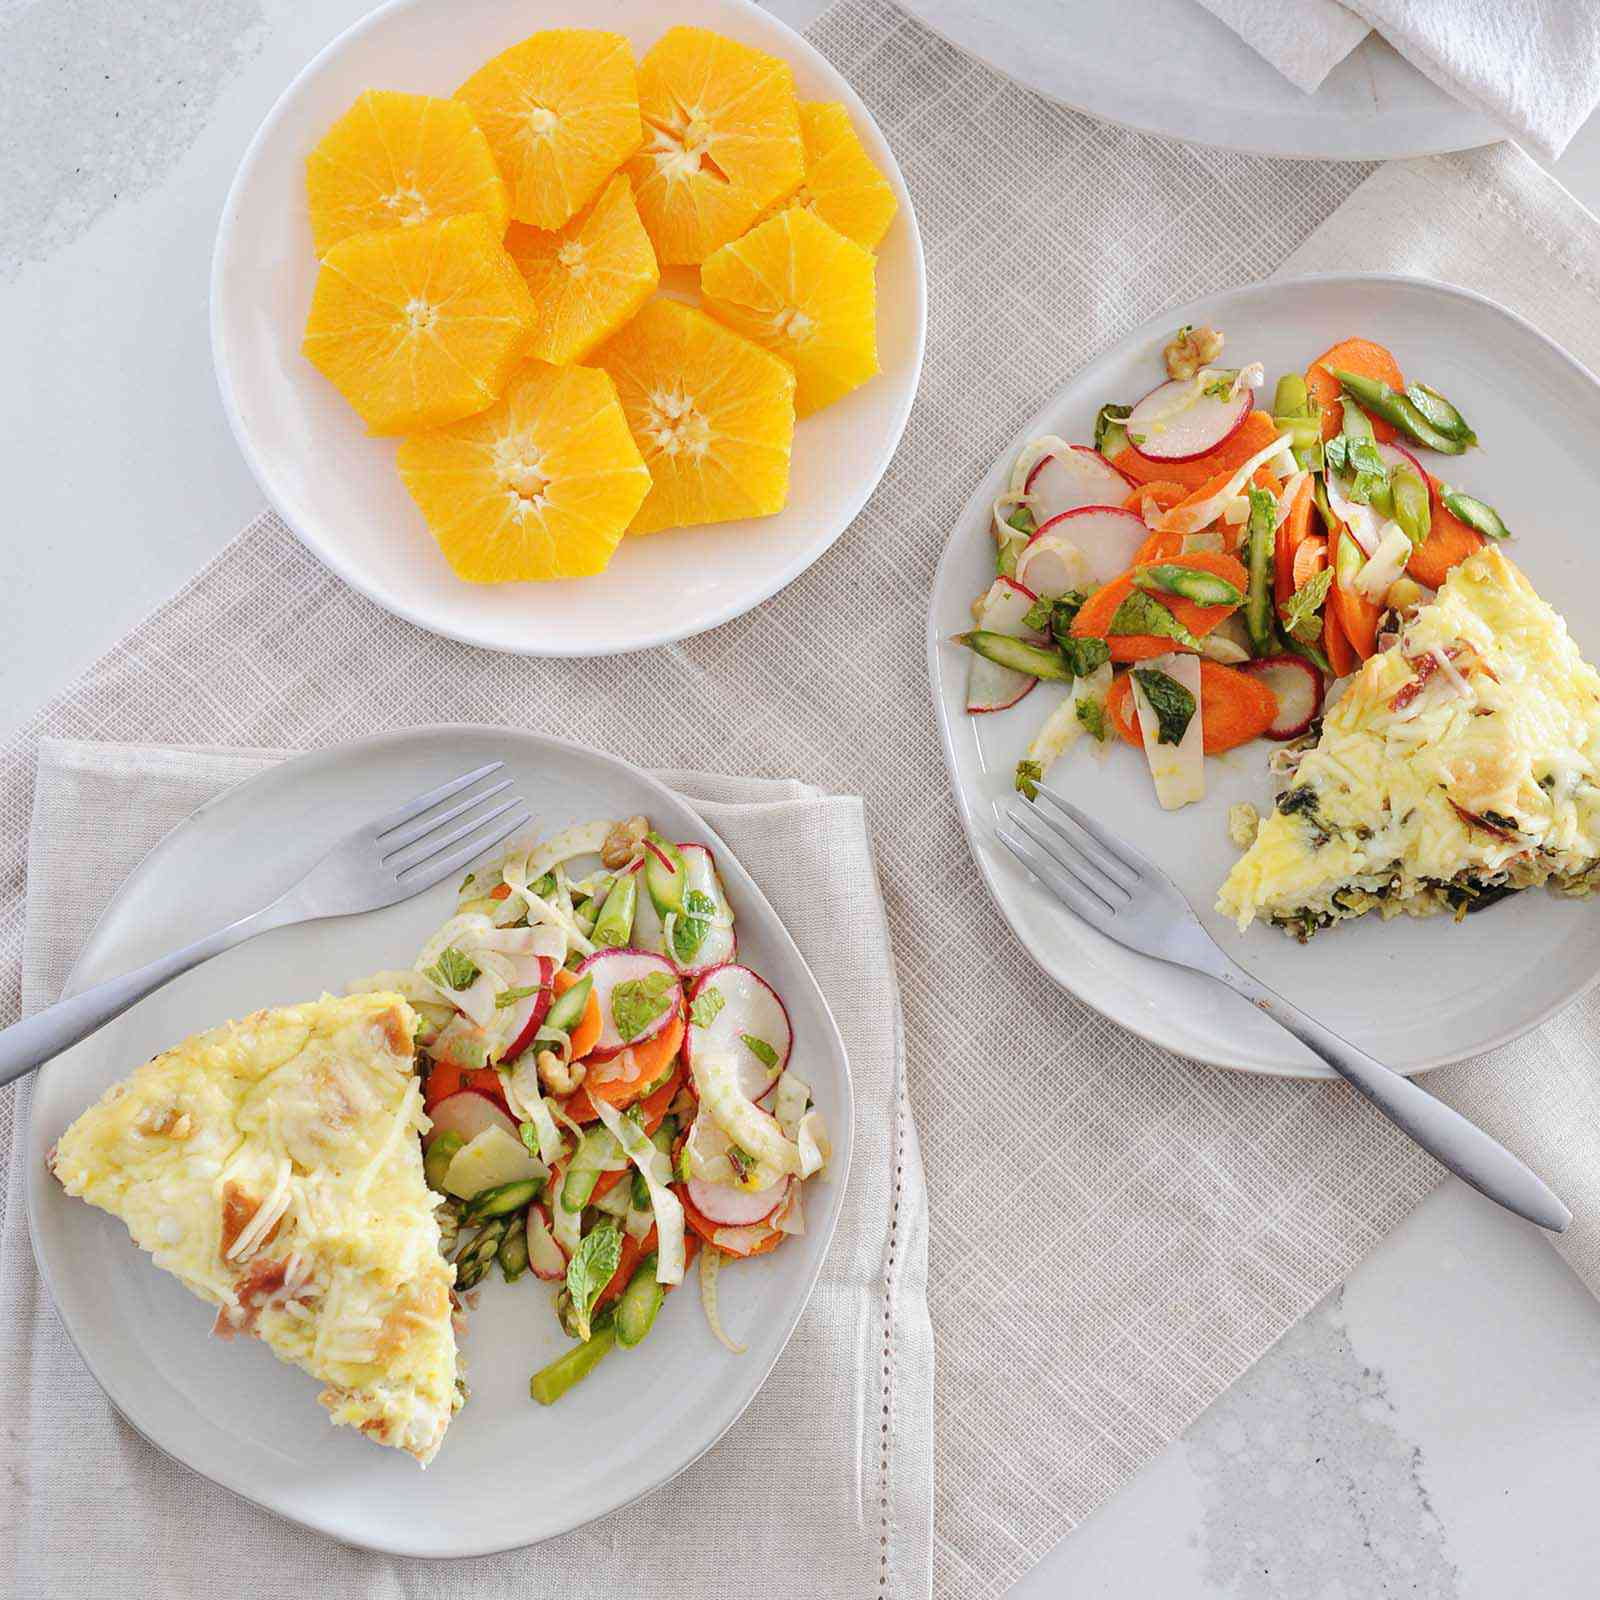 Two plates with a slice of breakfast strata on each as well as a spring salad. Sliced radish and chopped asparagus are visible in the salads. A fork is on each plate as well. Supremed sliced oranges are laid on a white plate set in the middle of the two plates with breakfast casserole inside. Cream linens are under the plates and the rest of the casserole is visible in the upper right corner with a plate and linen underneath.